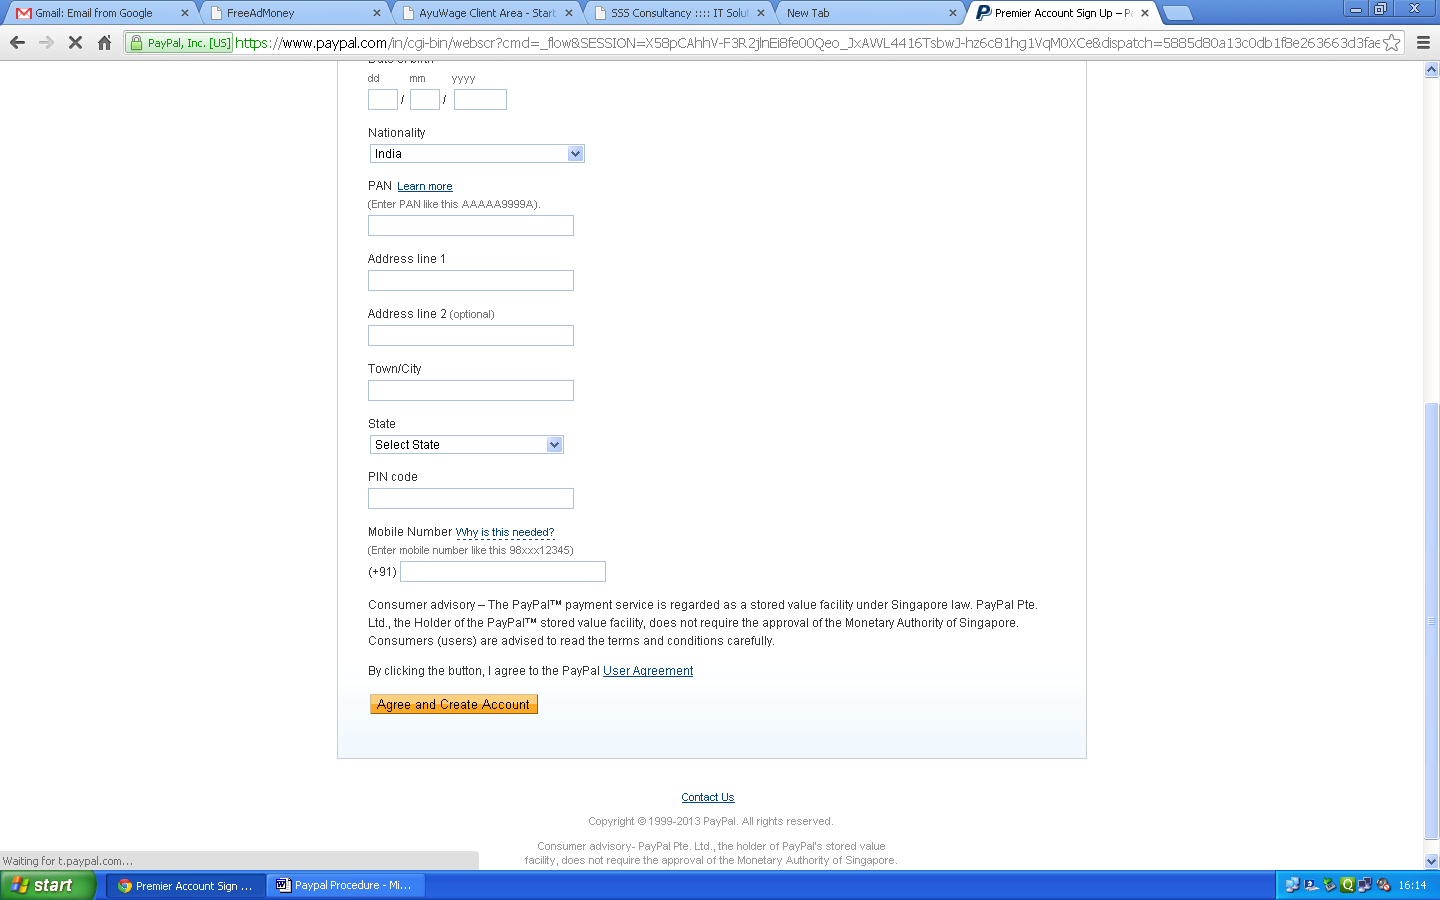 STEP 4: Click 'Agree and Create Account'.